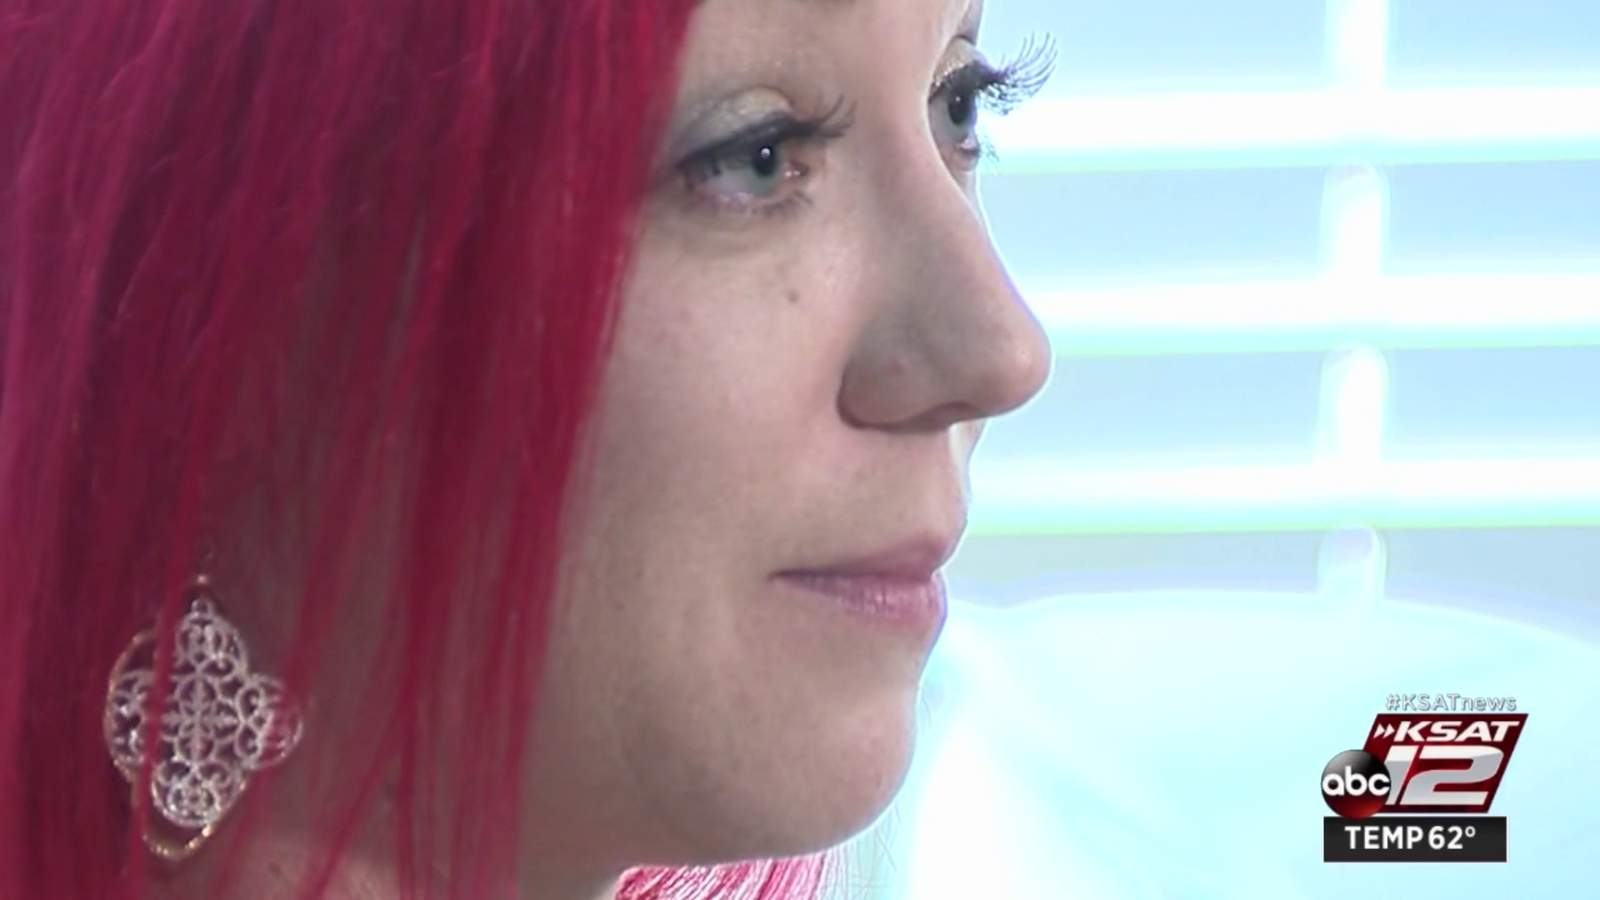 'My Prince Charming turned into a monster': Local woman survives sex trafficking